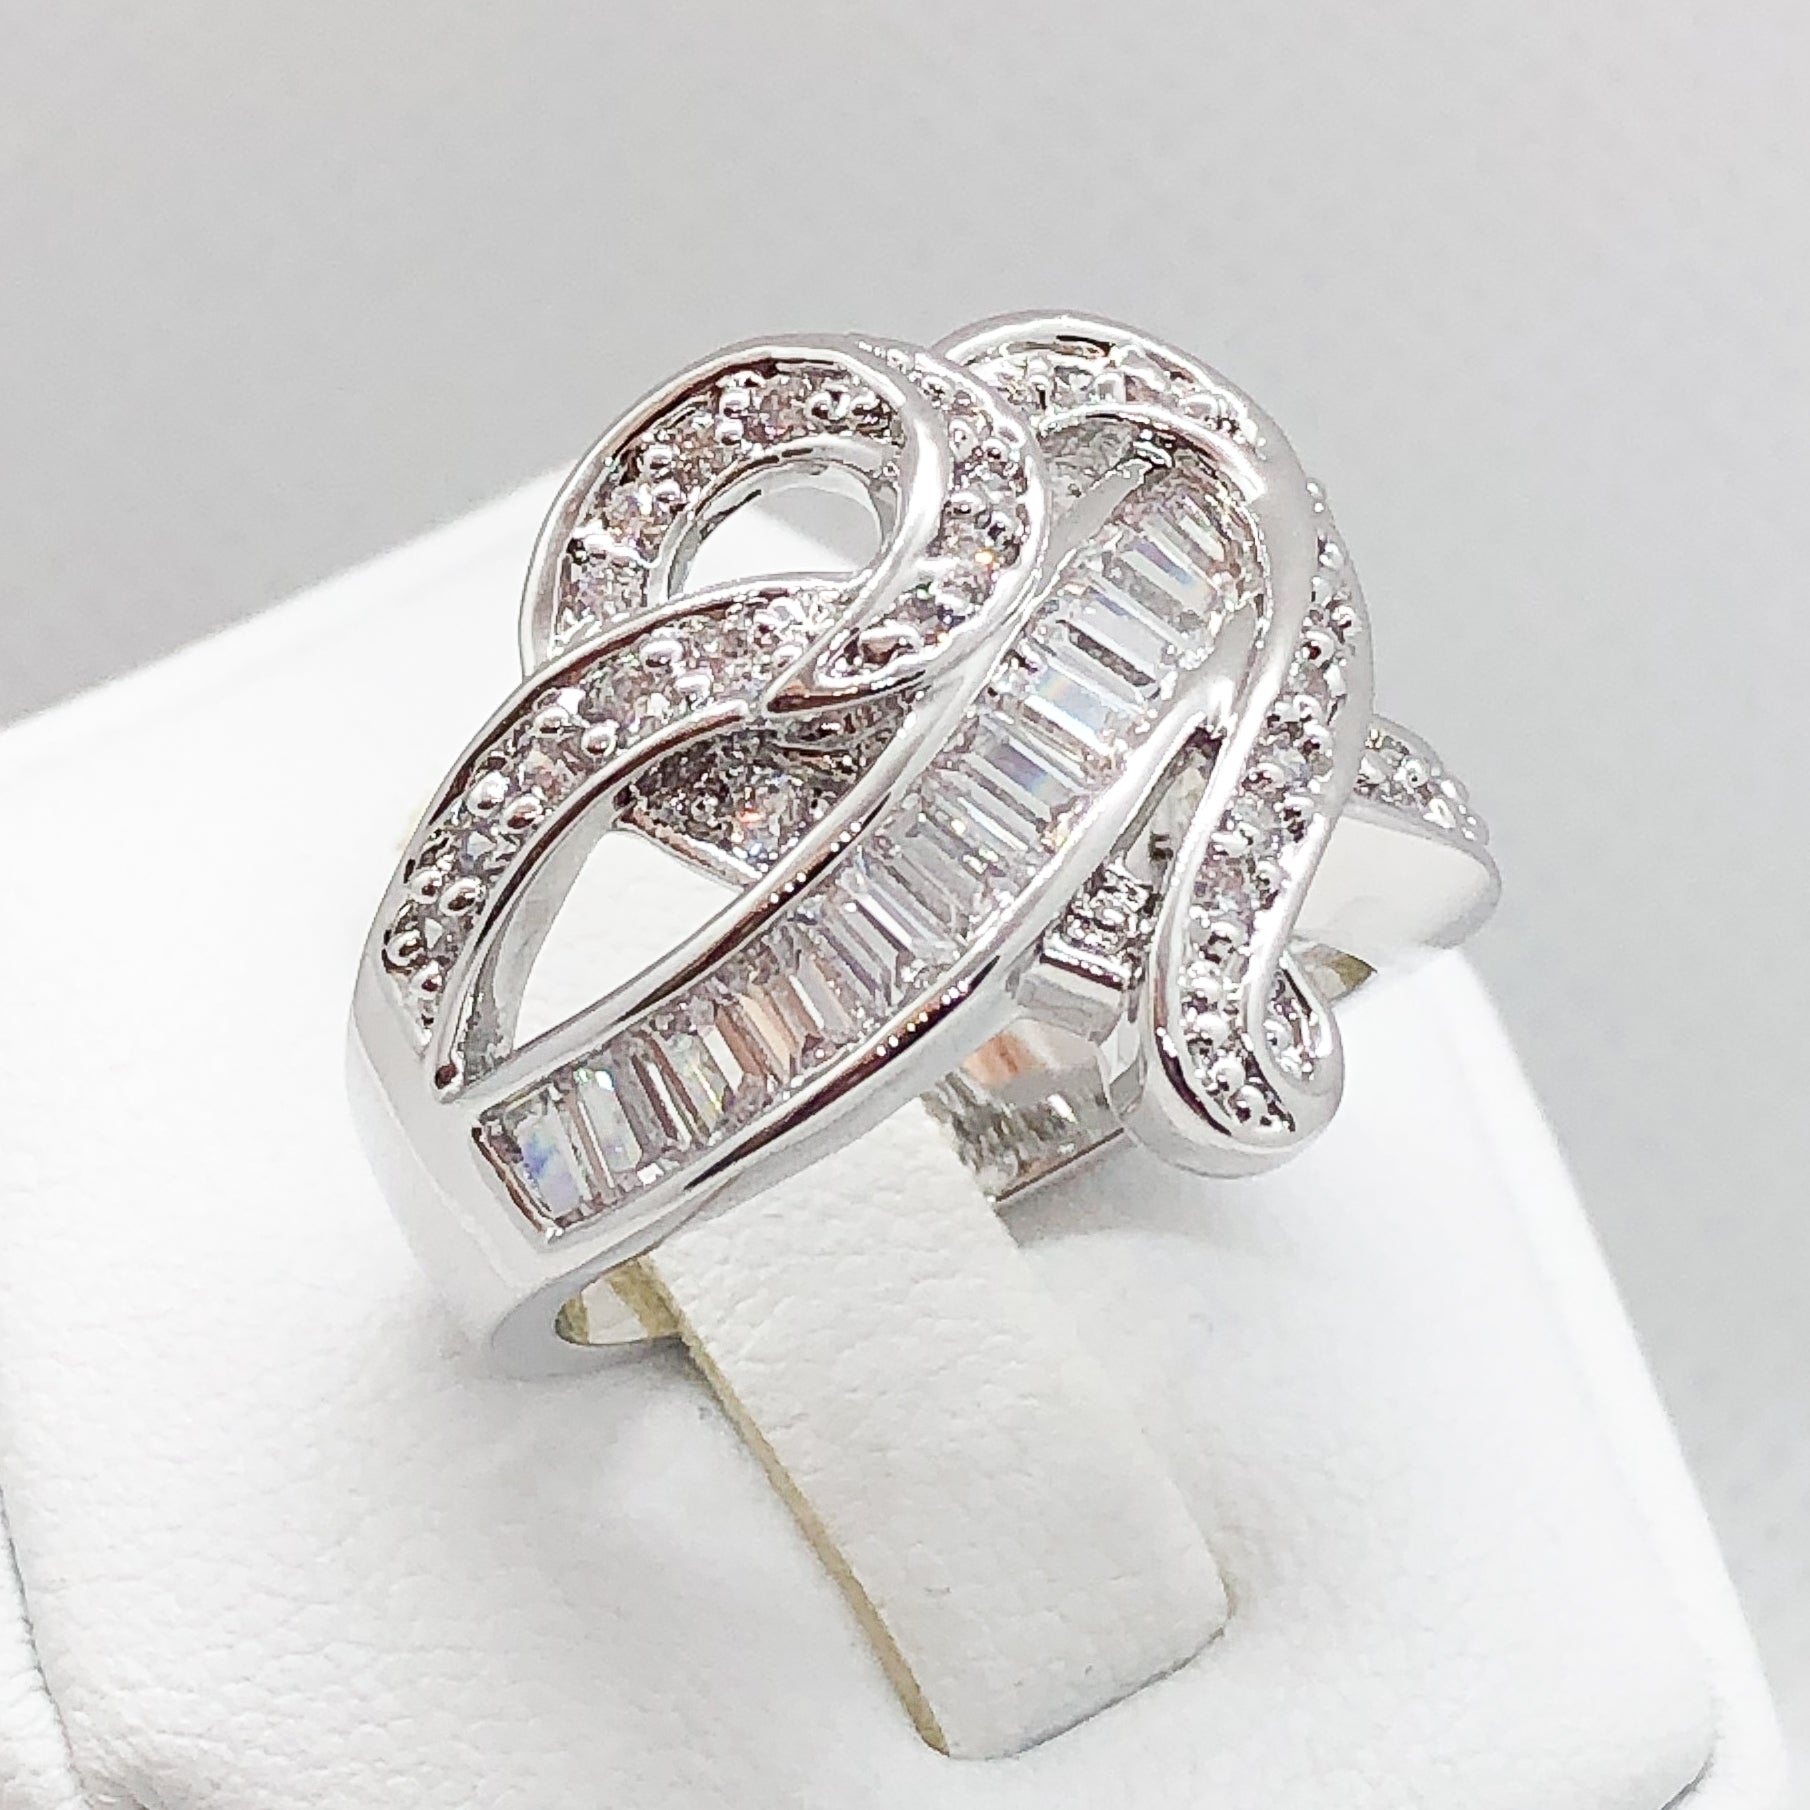 ID:R5472 Women 18K White Gold GF Fashion Jewelry Beautiful Unique Heart Design Cluster Cocktail Ring Anniversary Gift